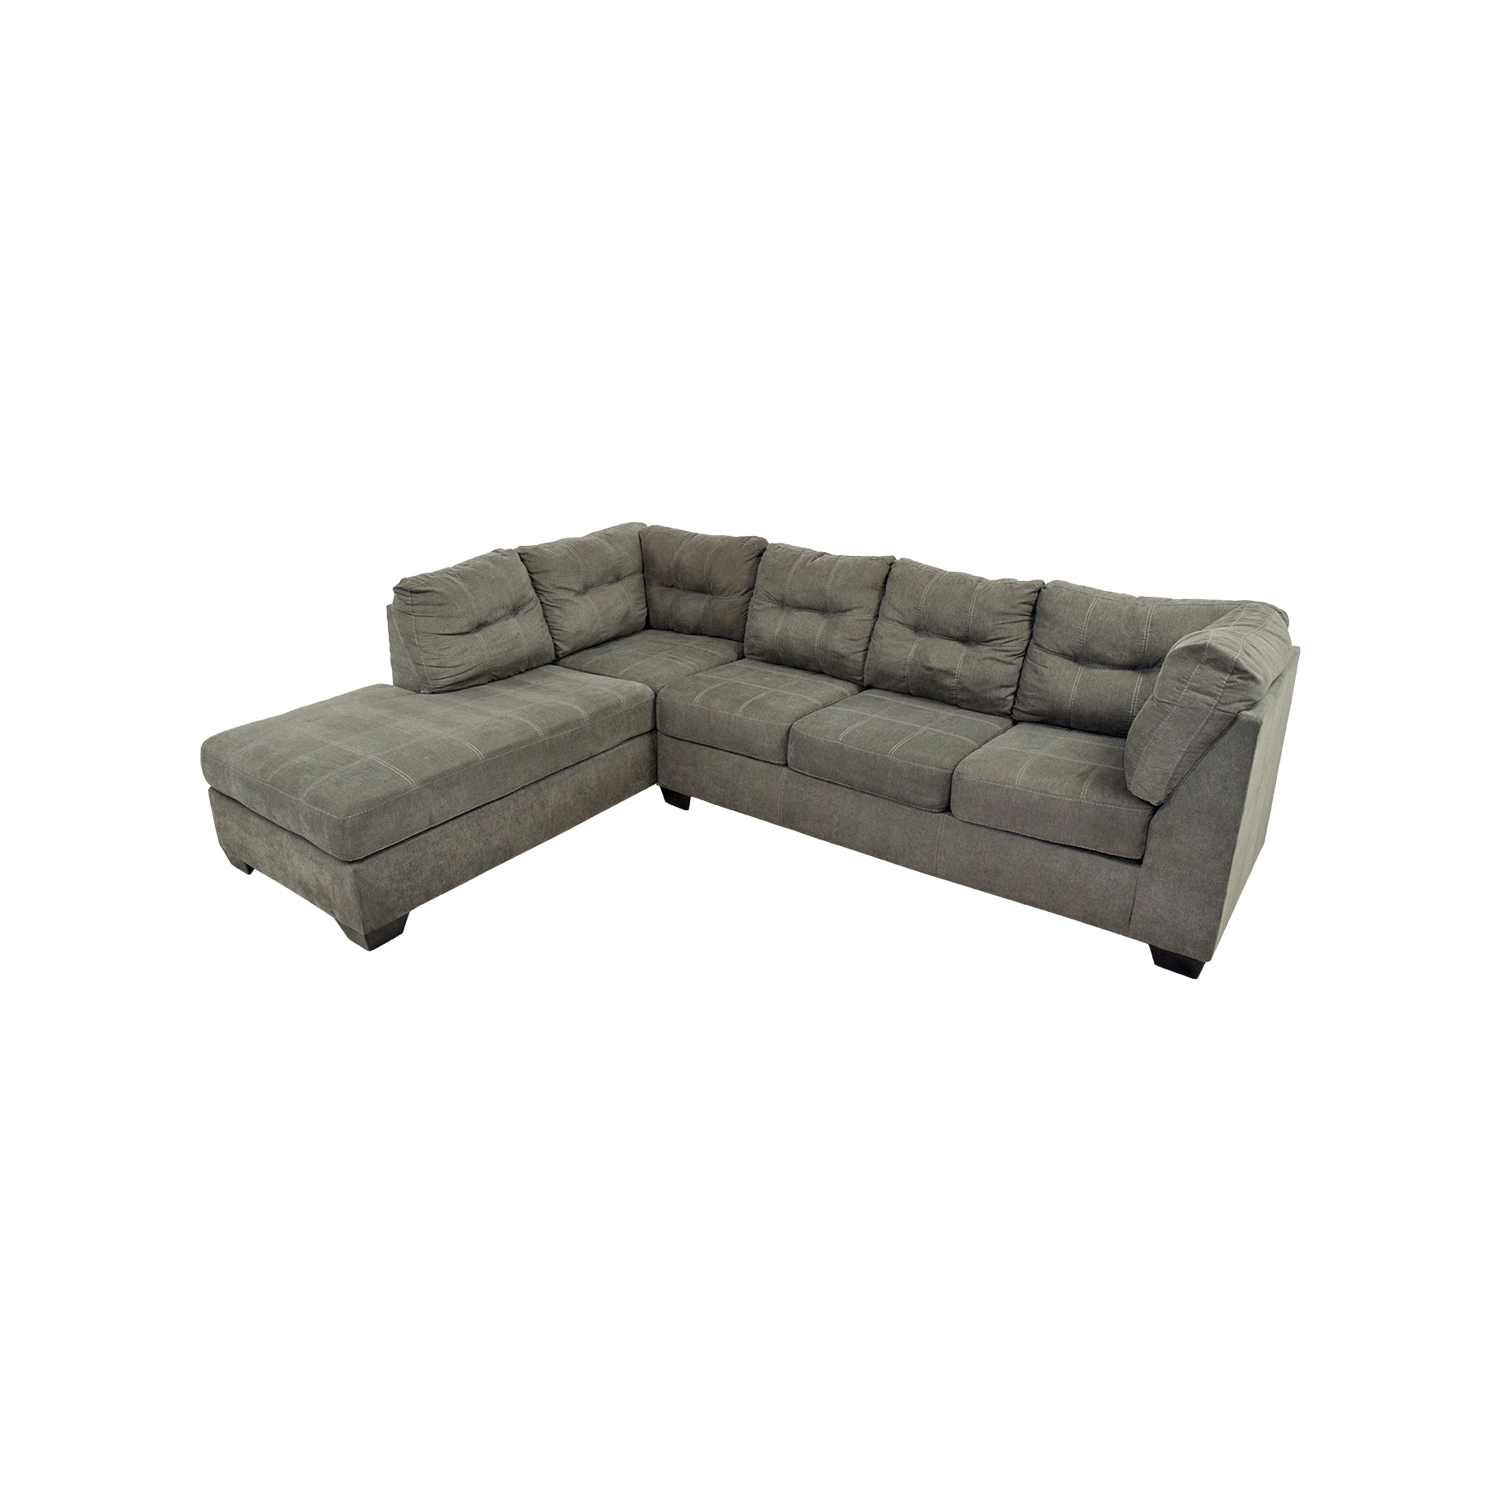 Mercury Row Mercury Row Cornett Charcoal Sectional dimensions